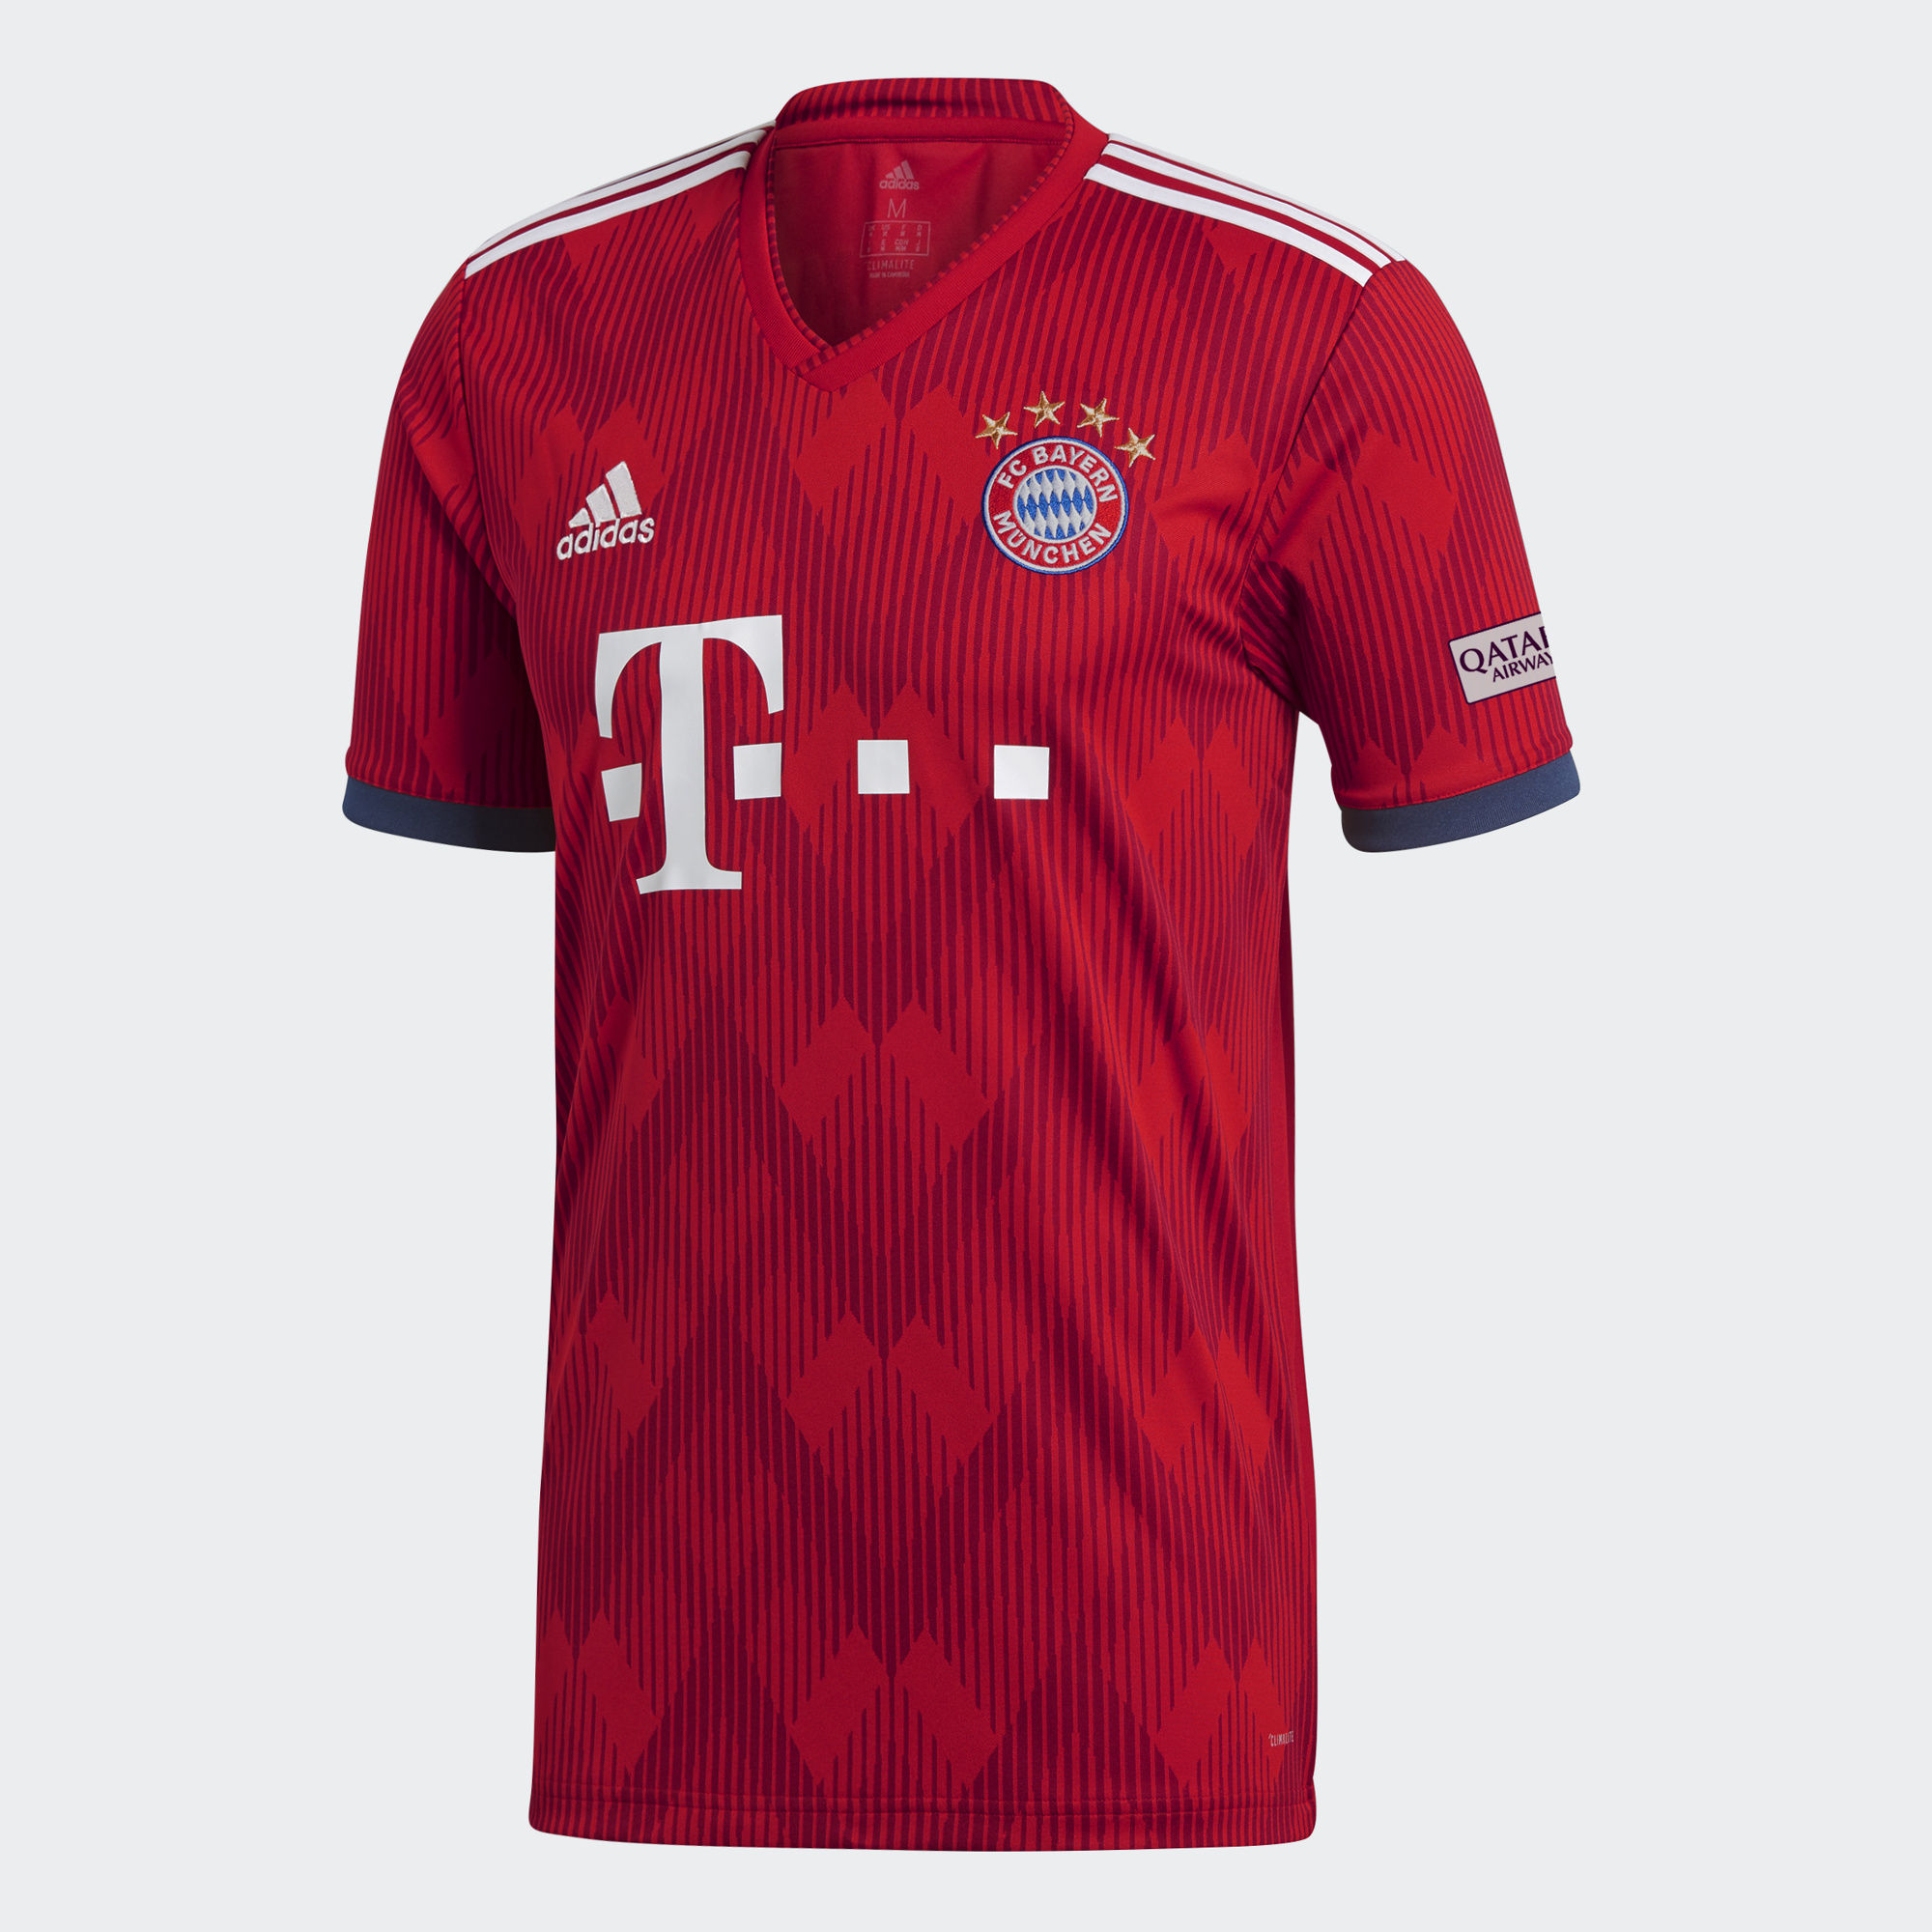 84be44aa1297d ADIDAS FC BAYERN MUNICH HOME REPLICA JERSEY MENS - Poobie Naidoos